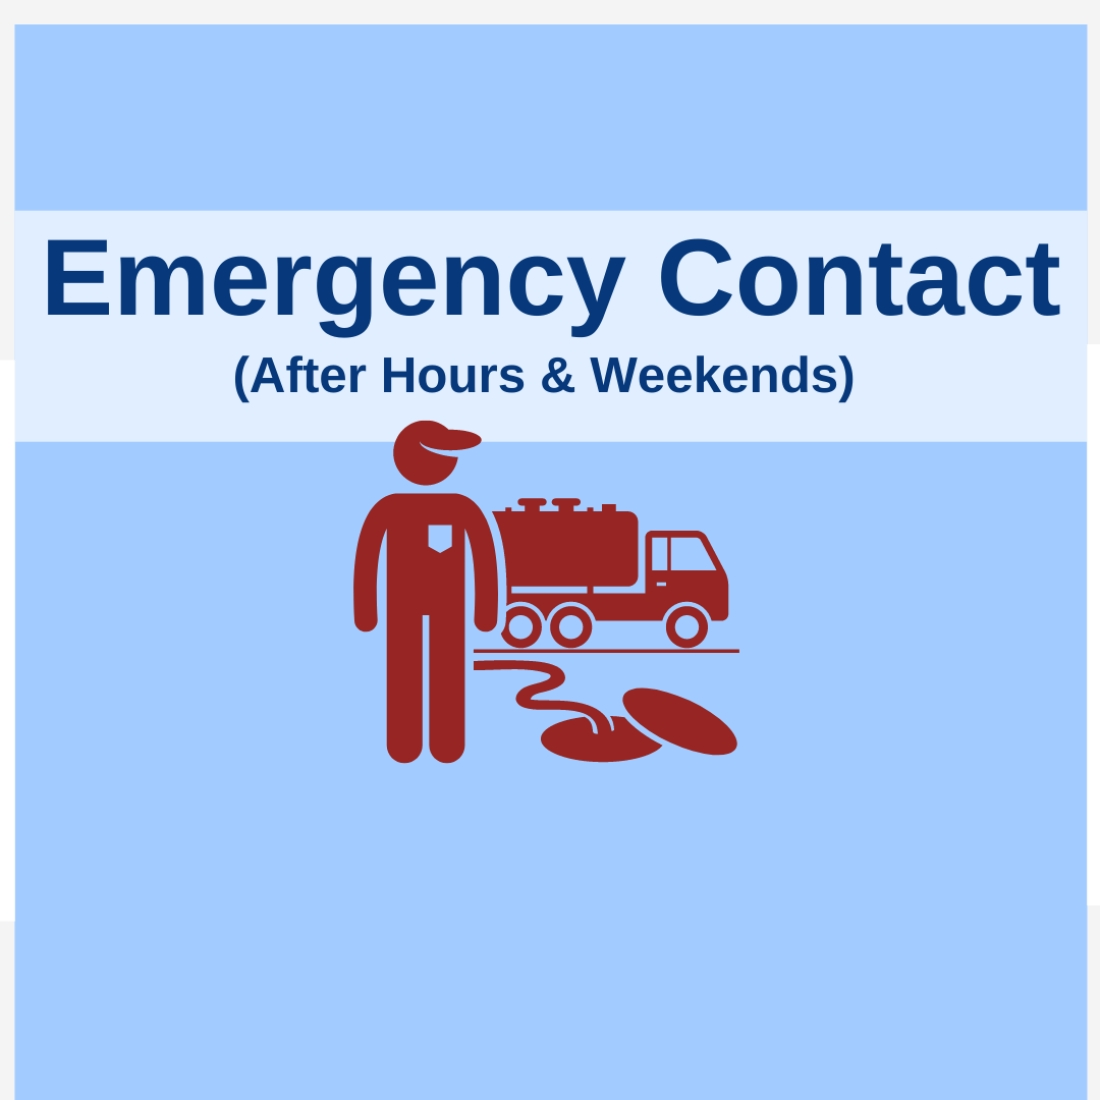 After Hours Emergency Contact